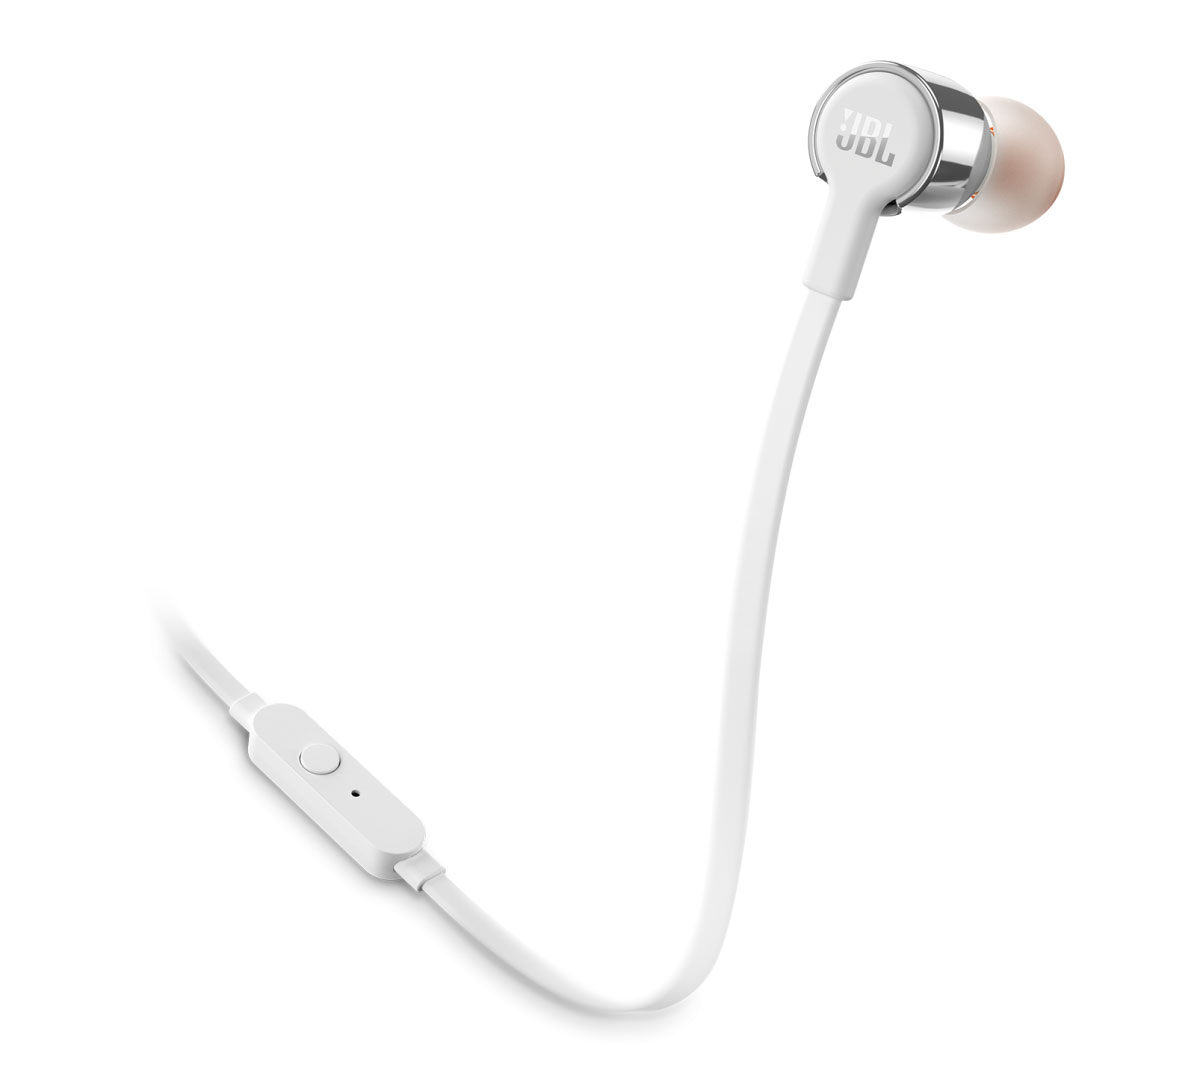 JBL T210 Grey In-Ear Headphones + JBL Pure Bass Sound + Single button remote/mic + Θήκη (κλήσεις & μουσική με flat καλώδιο)